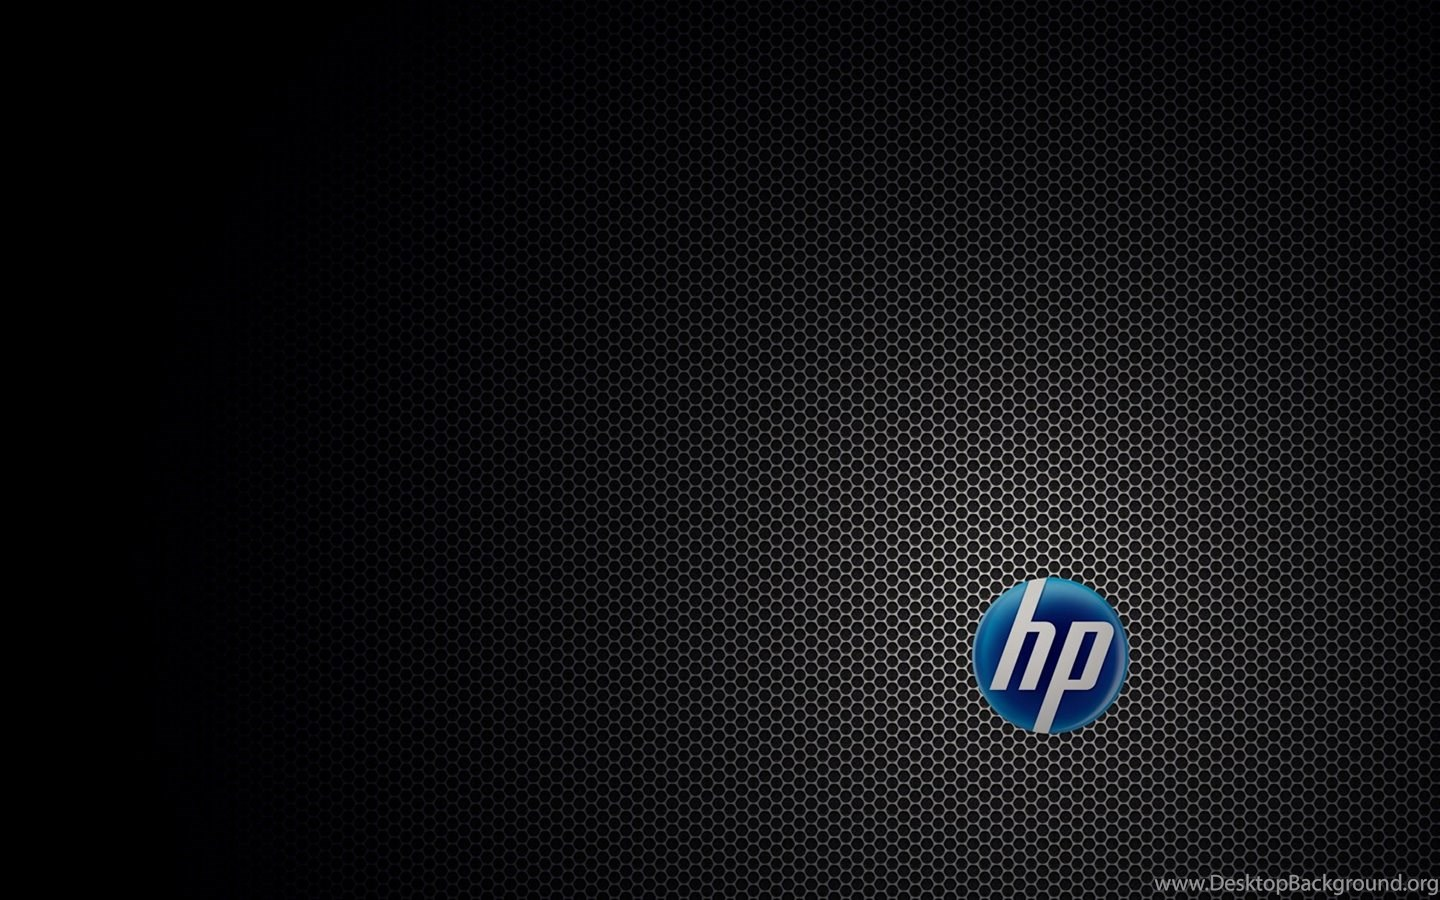 1440x900 - Wallpapers for HP Envy 58